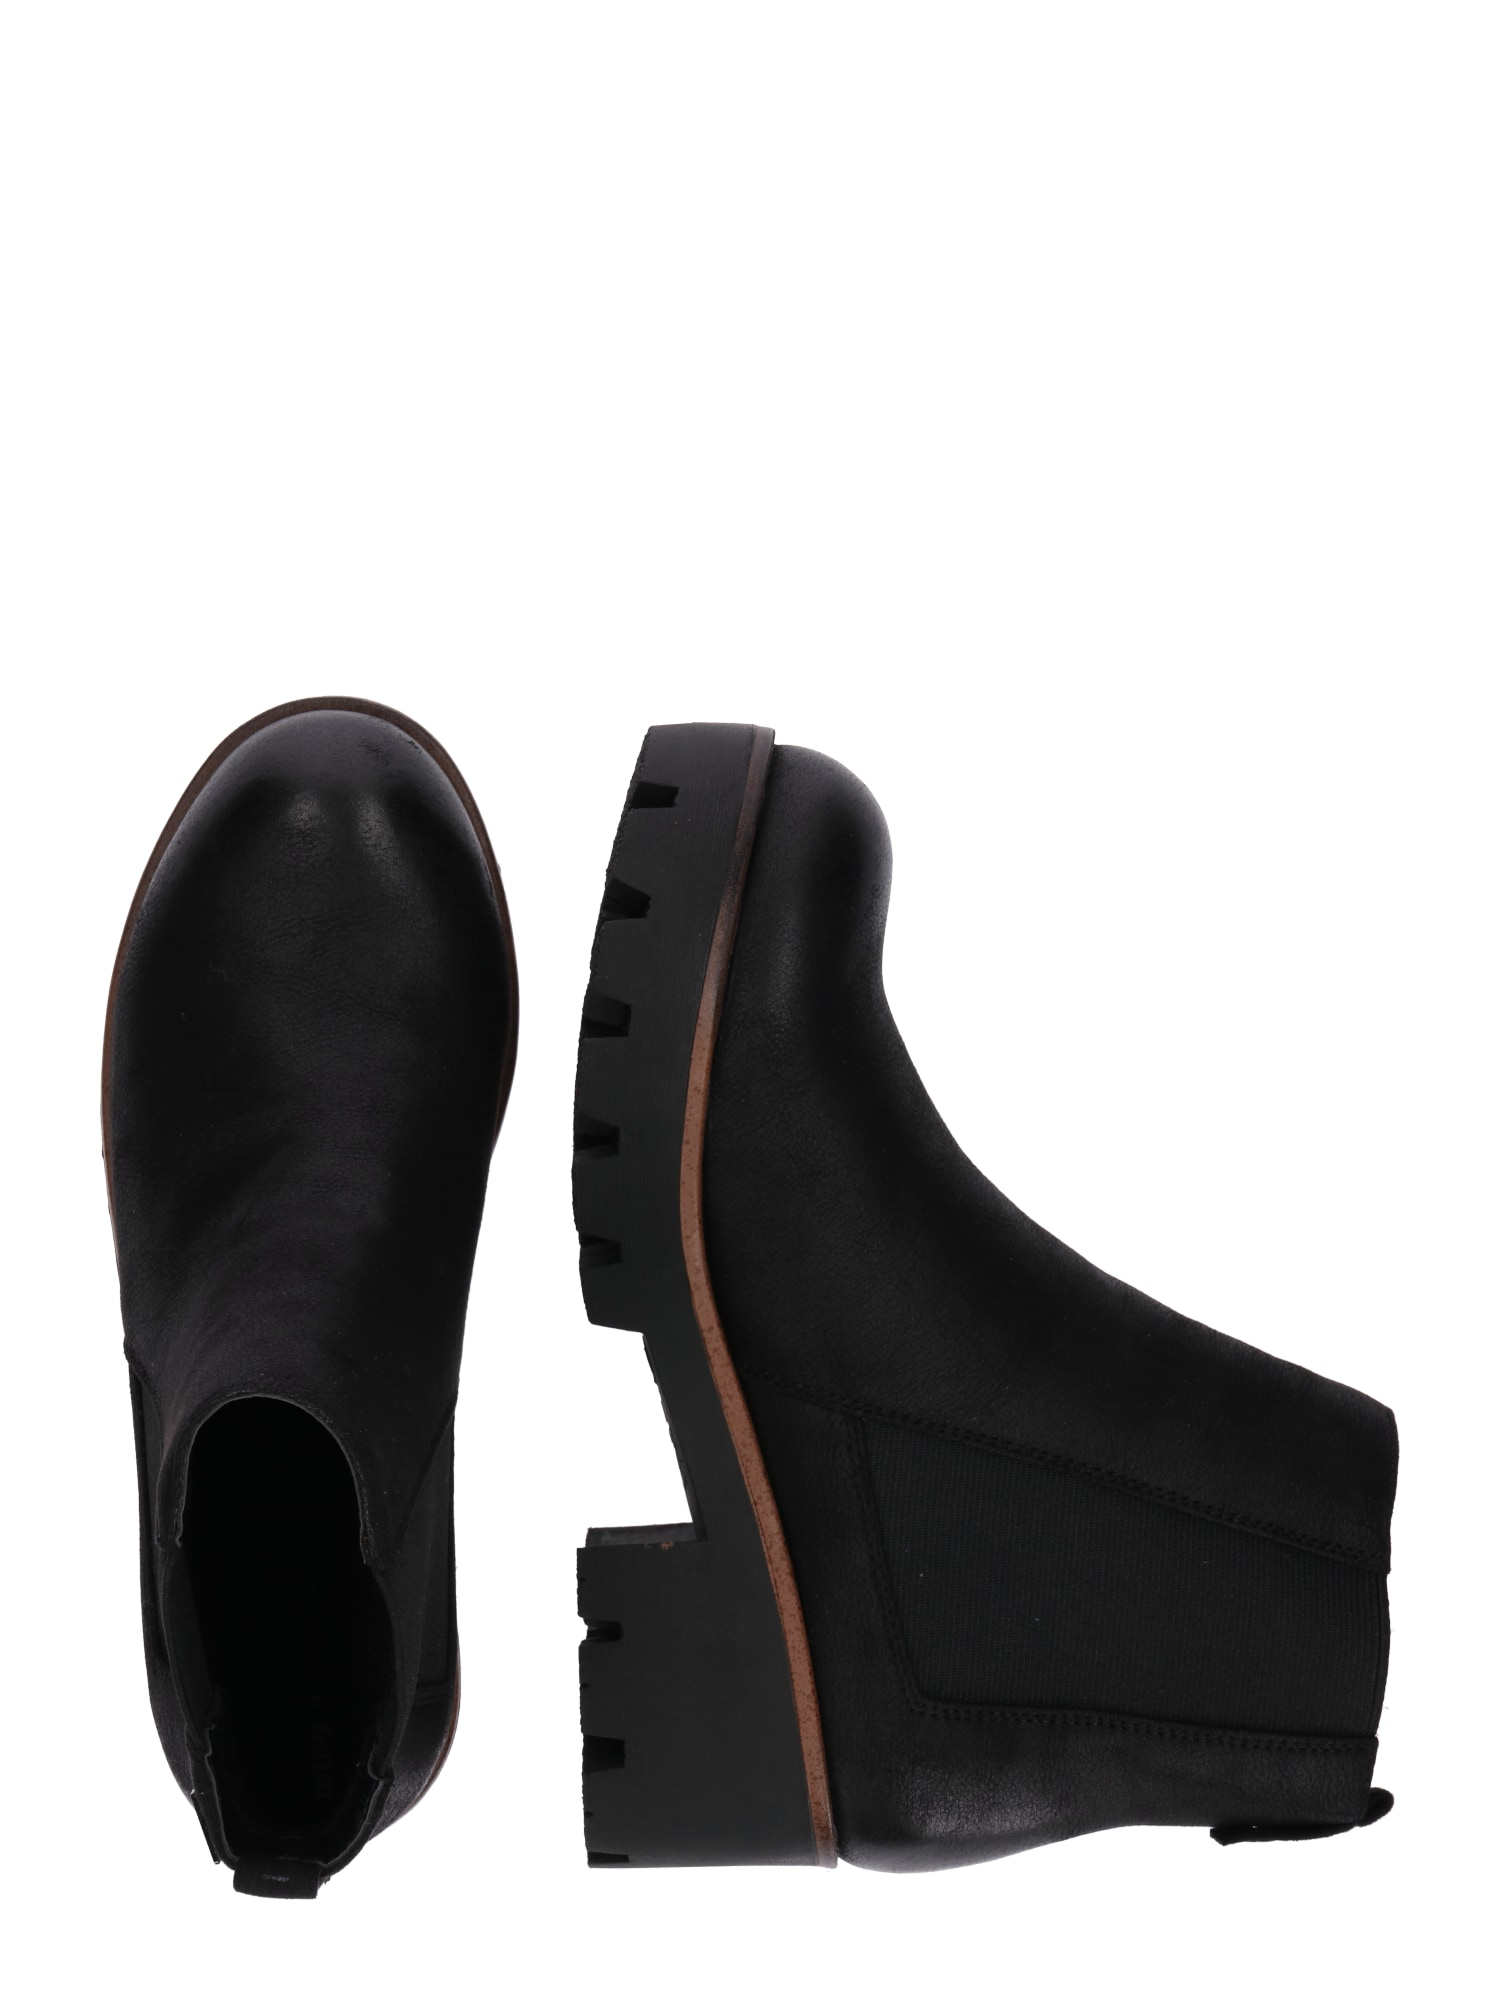 Chelsea boots 'Sauro'